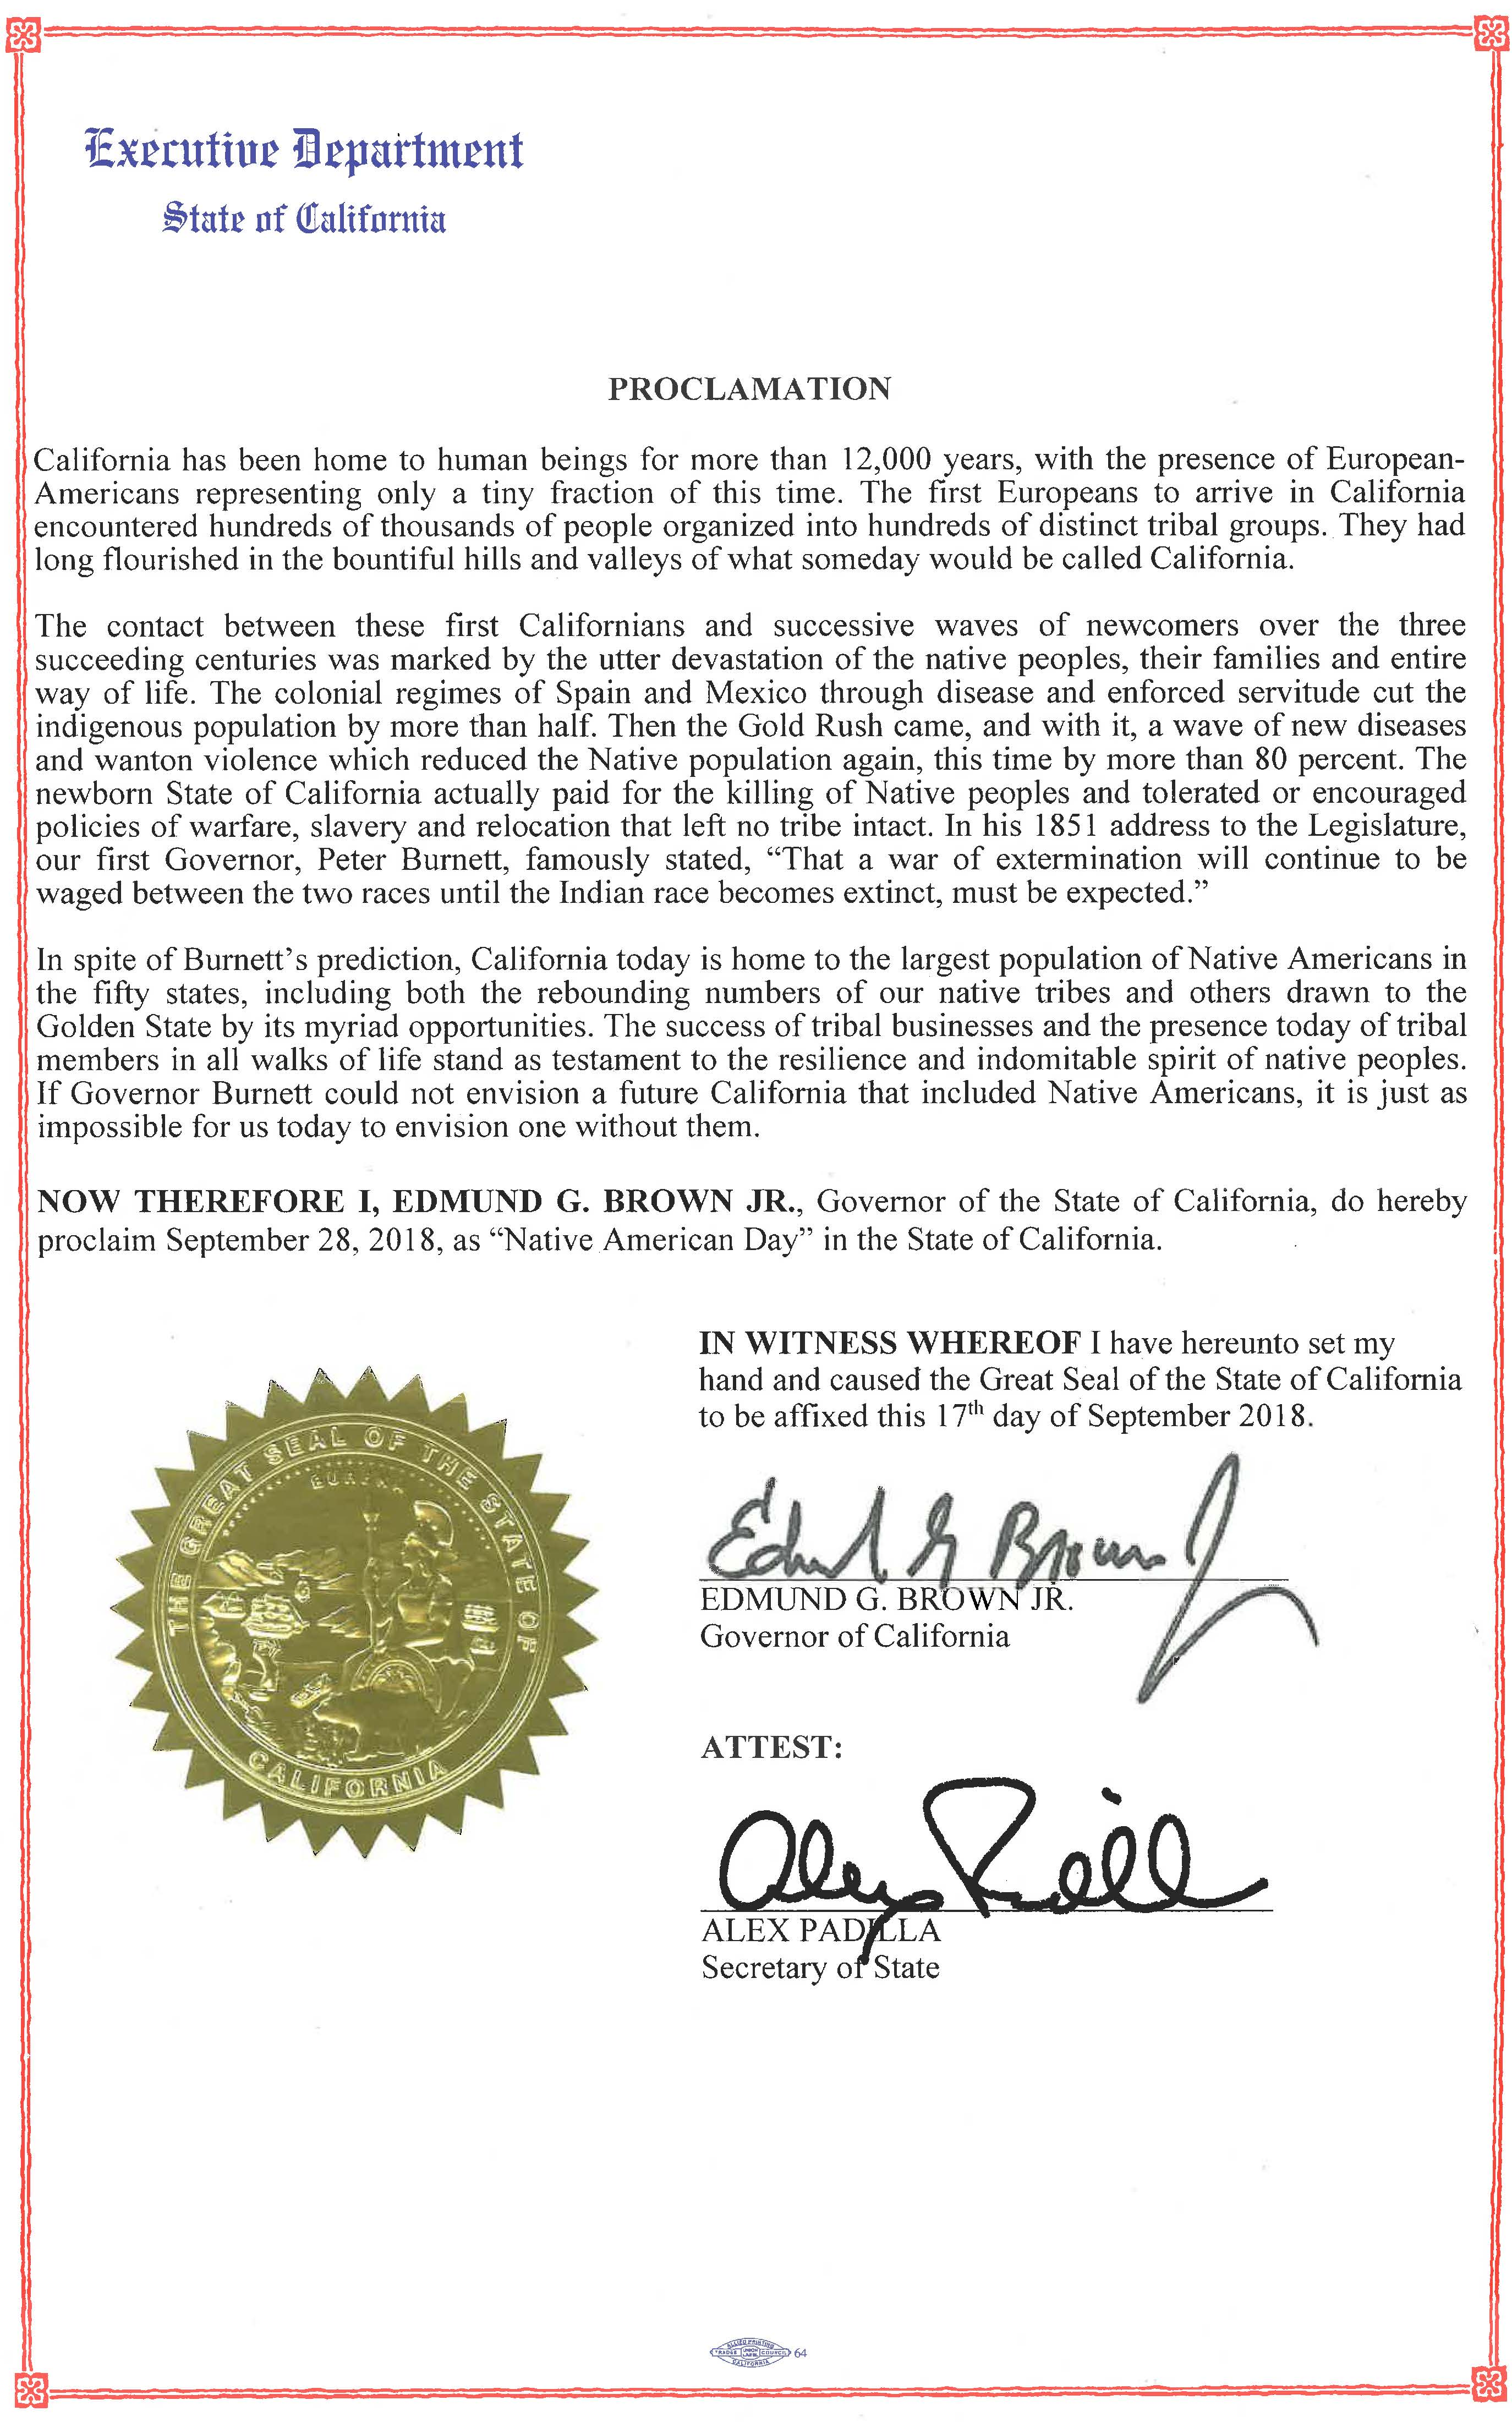 Governor Brown Issues Proclamation Declaring Native American